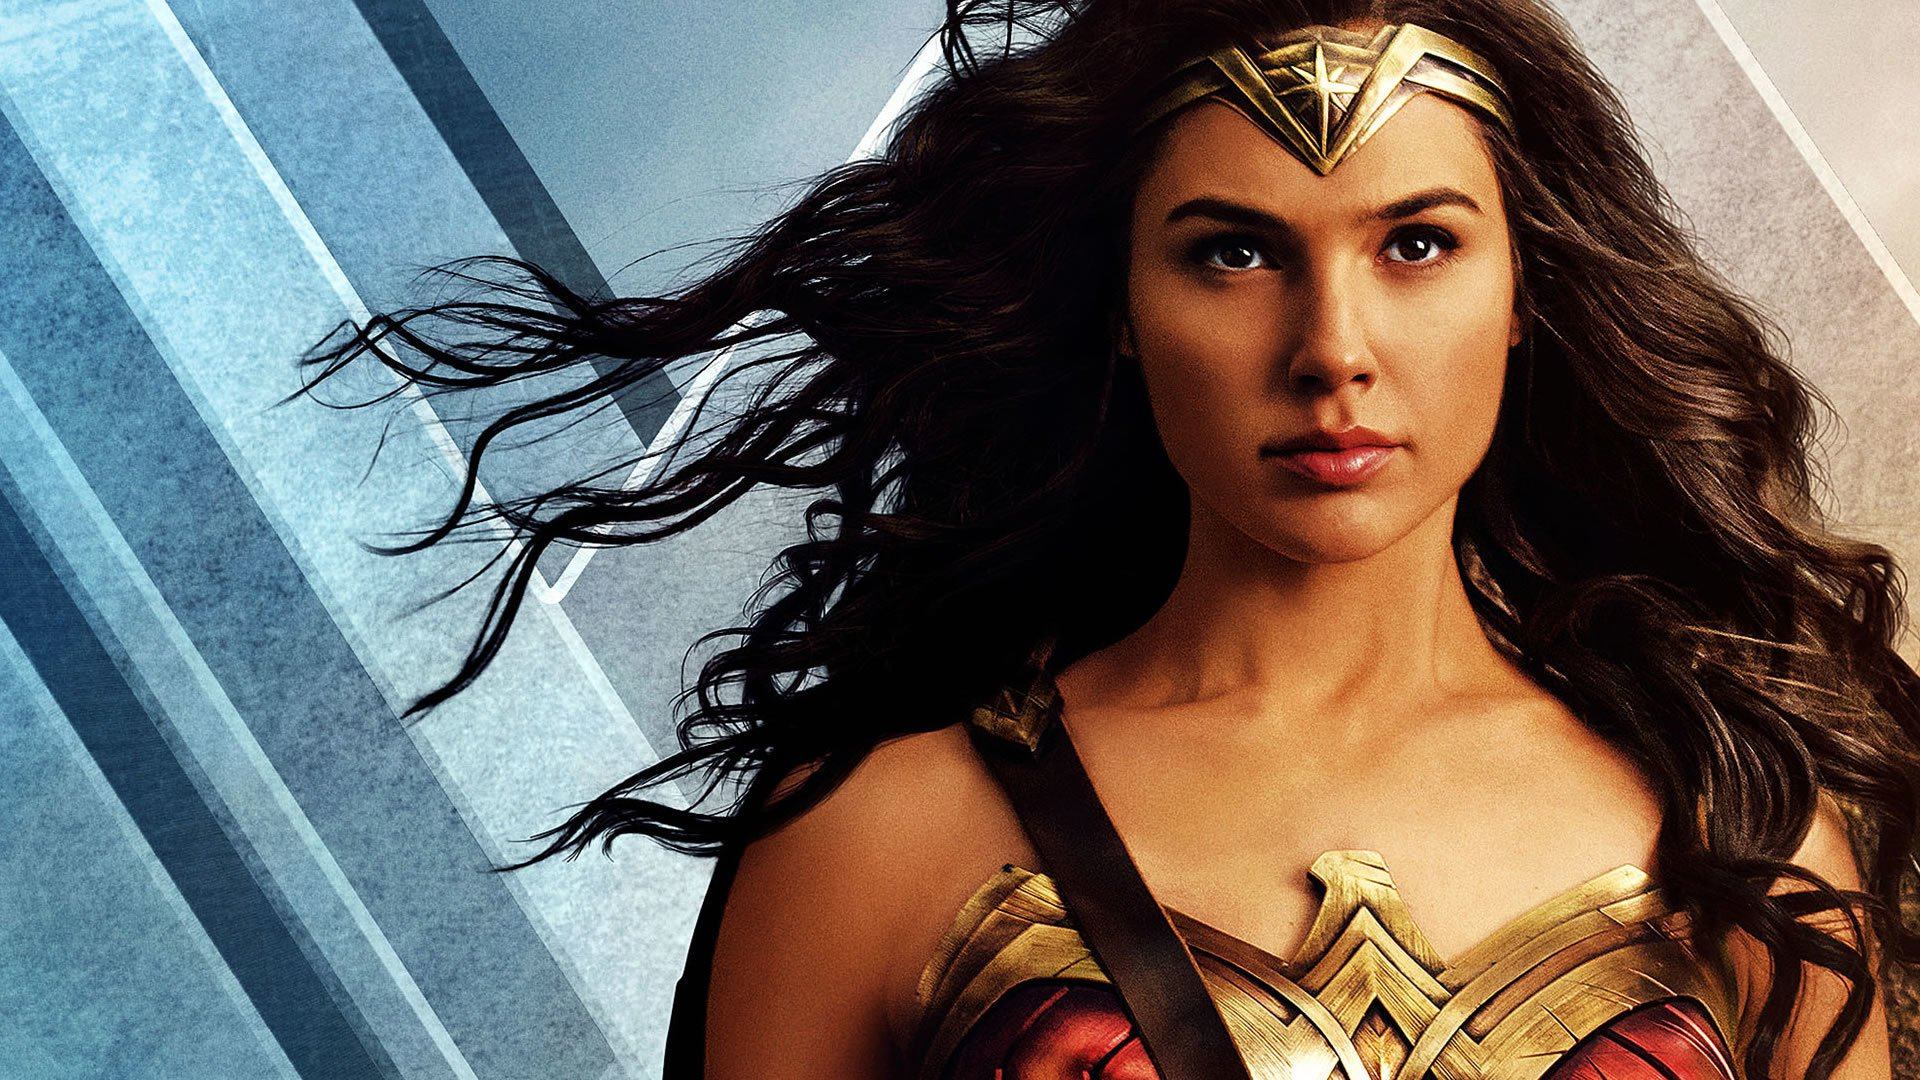 Wonder Woman Hd Wallpaper: Wonder Woman HD Wallpapers, Pictures, Images